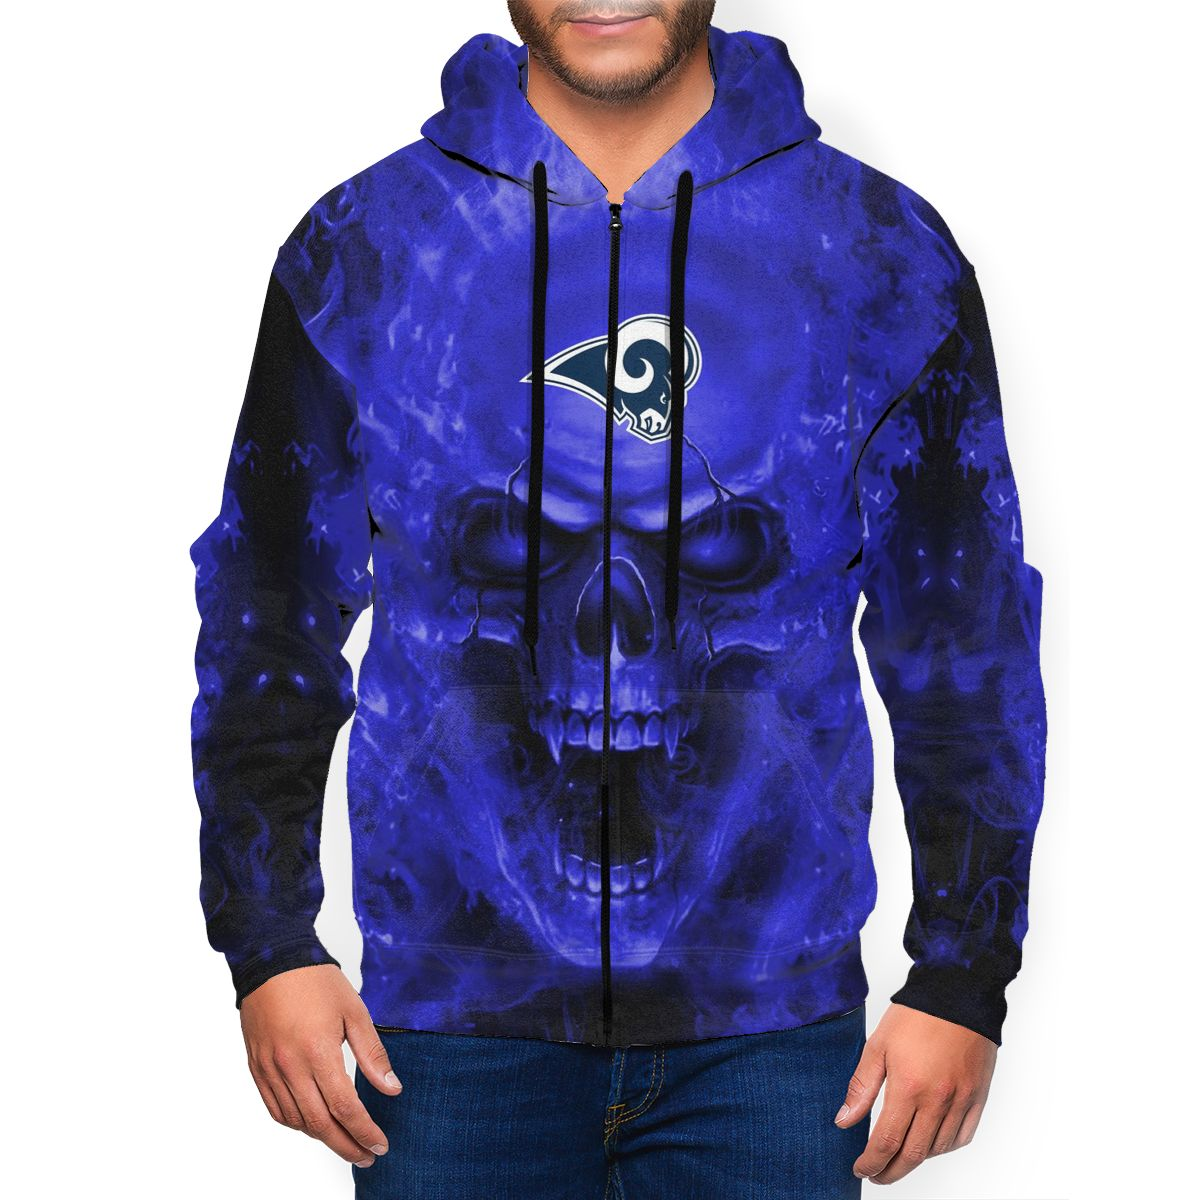 3D Skull Rams Men's Zip Hooded Sweatshirt